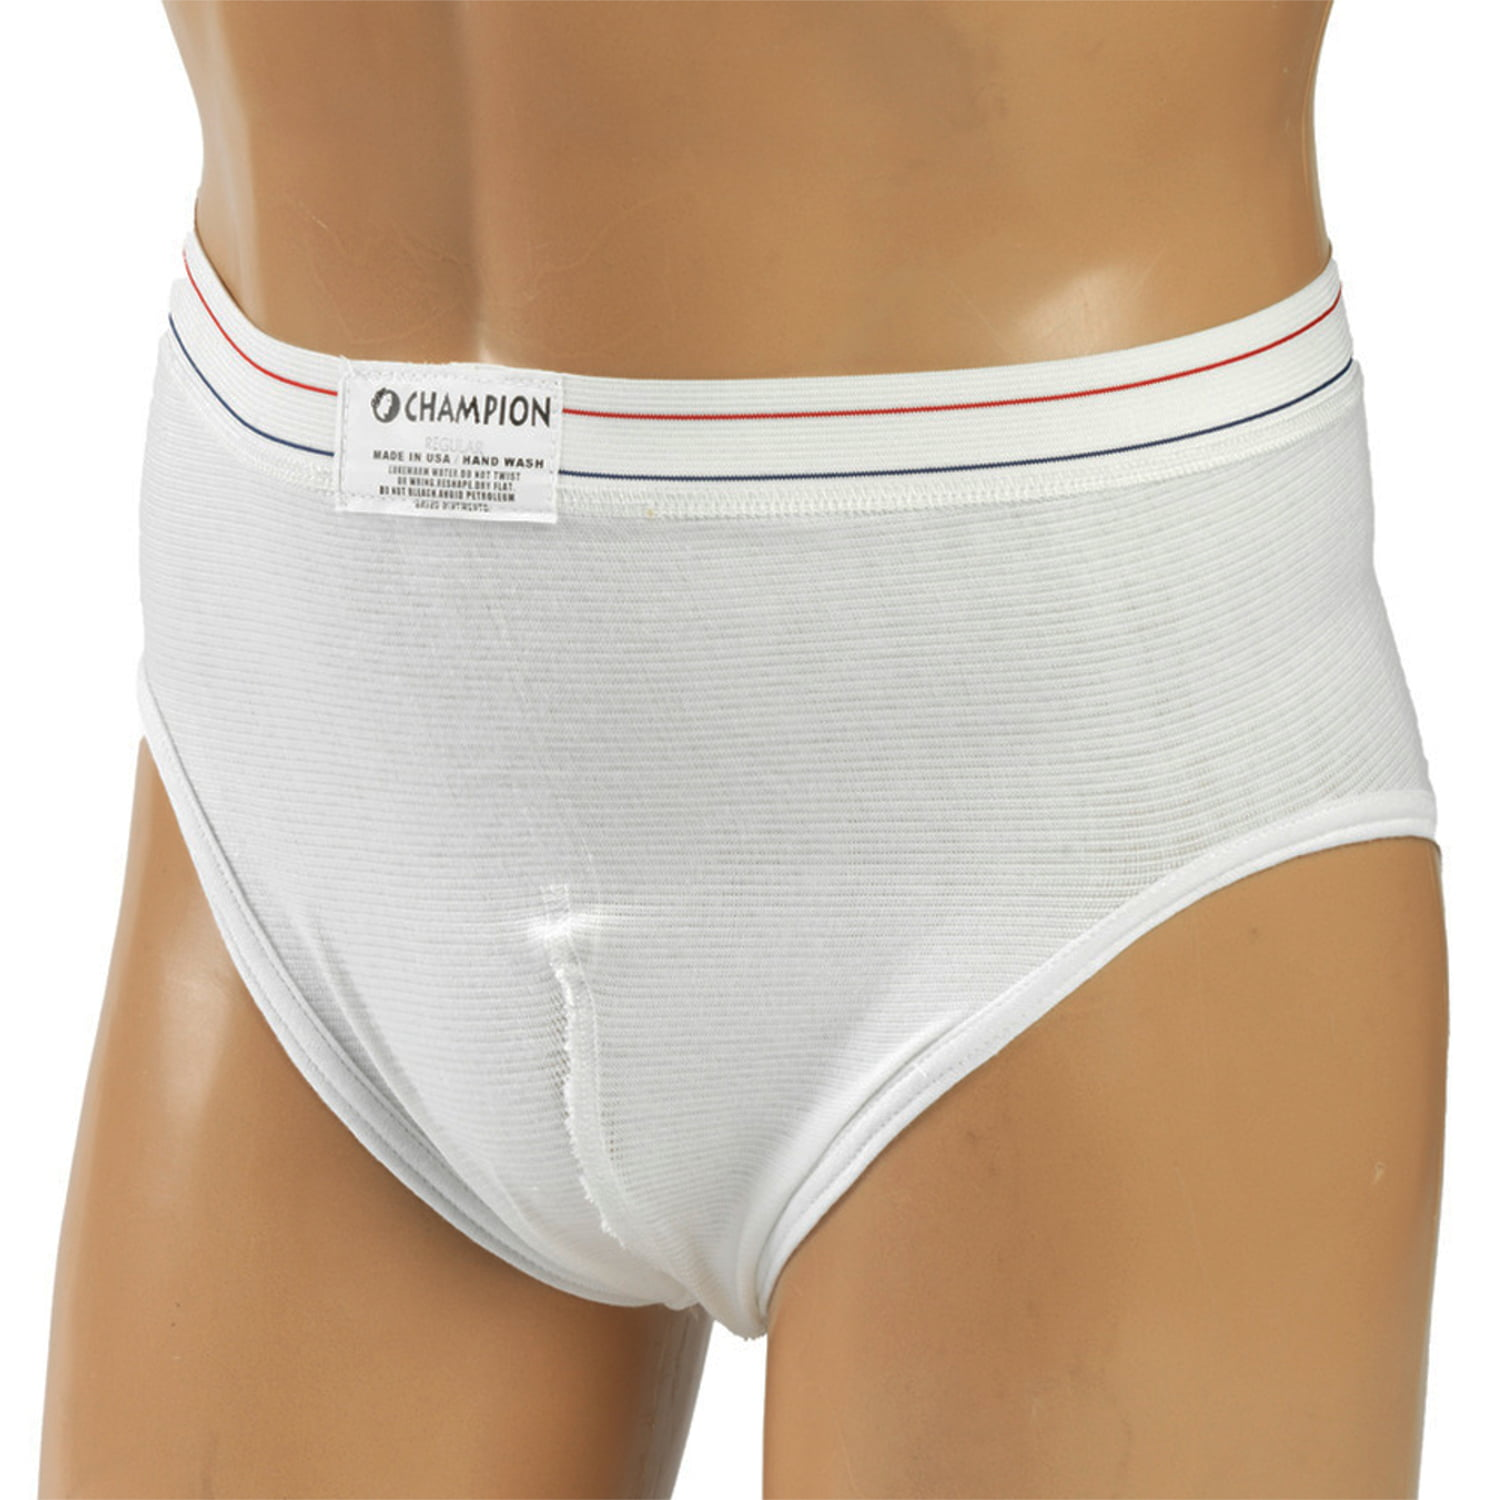 Champion Sports Brief, White, Large by SURGICAL APPLIANCE INDUSTRIES